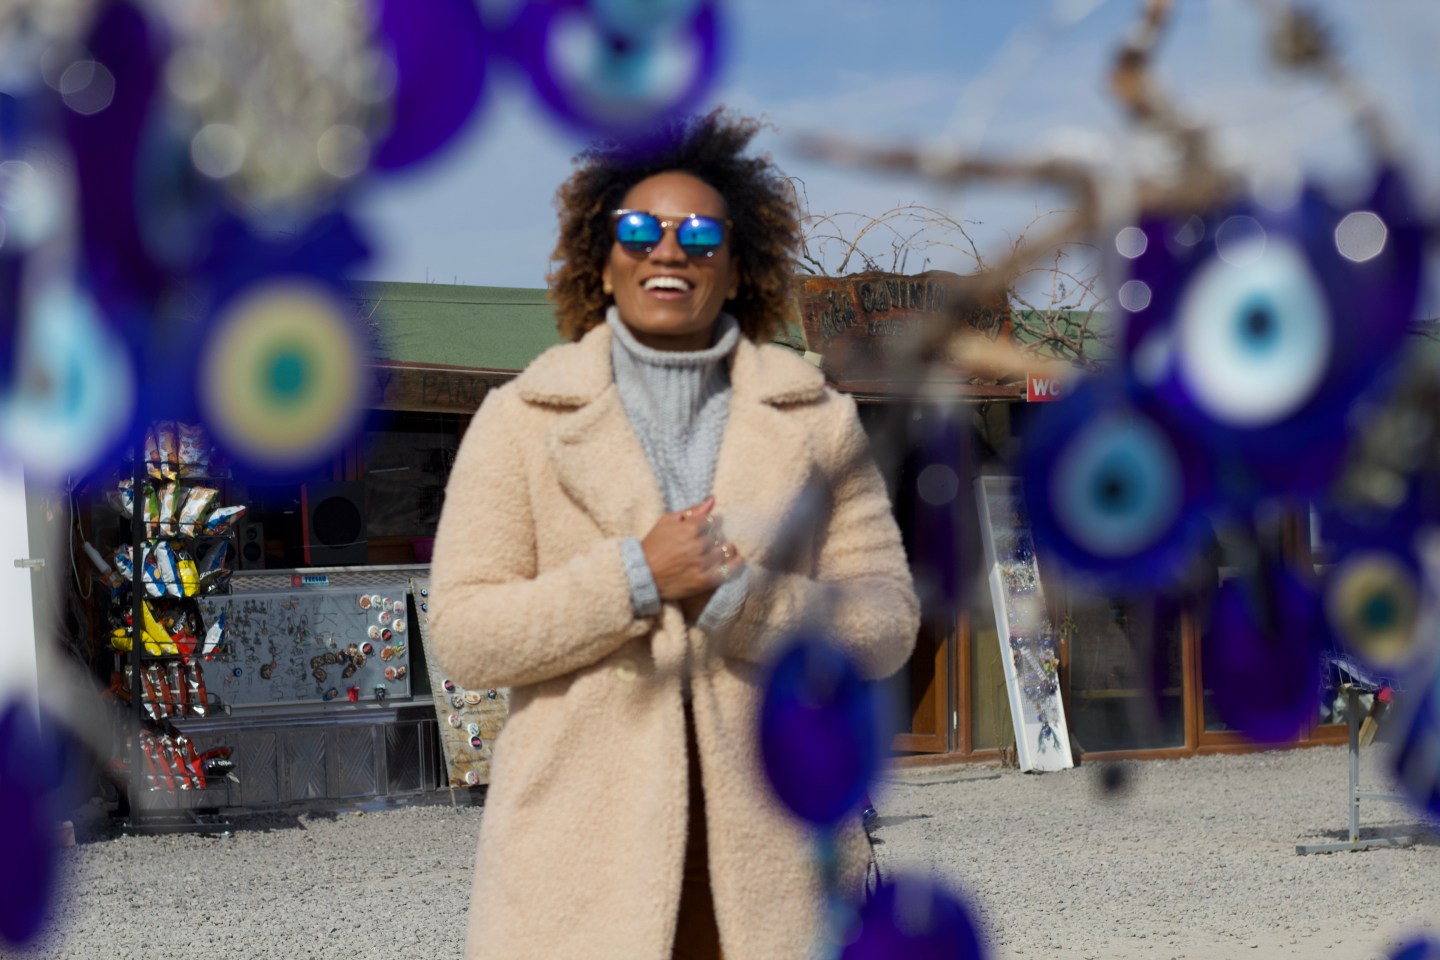 Illustrated by Sade - Taking a photo in front of a tree adorned with evil eye ornaments in Love Valley, Cappadocia